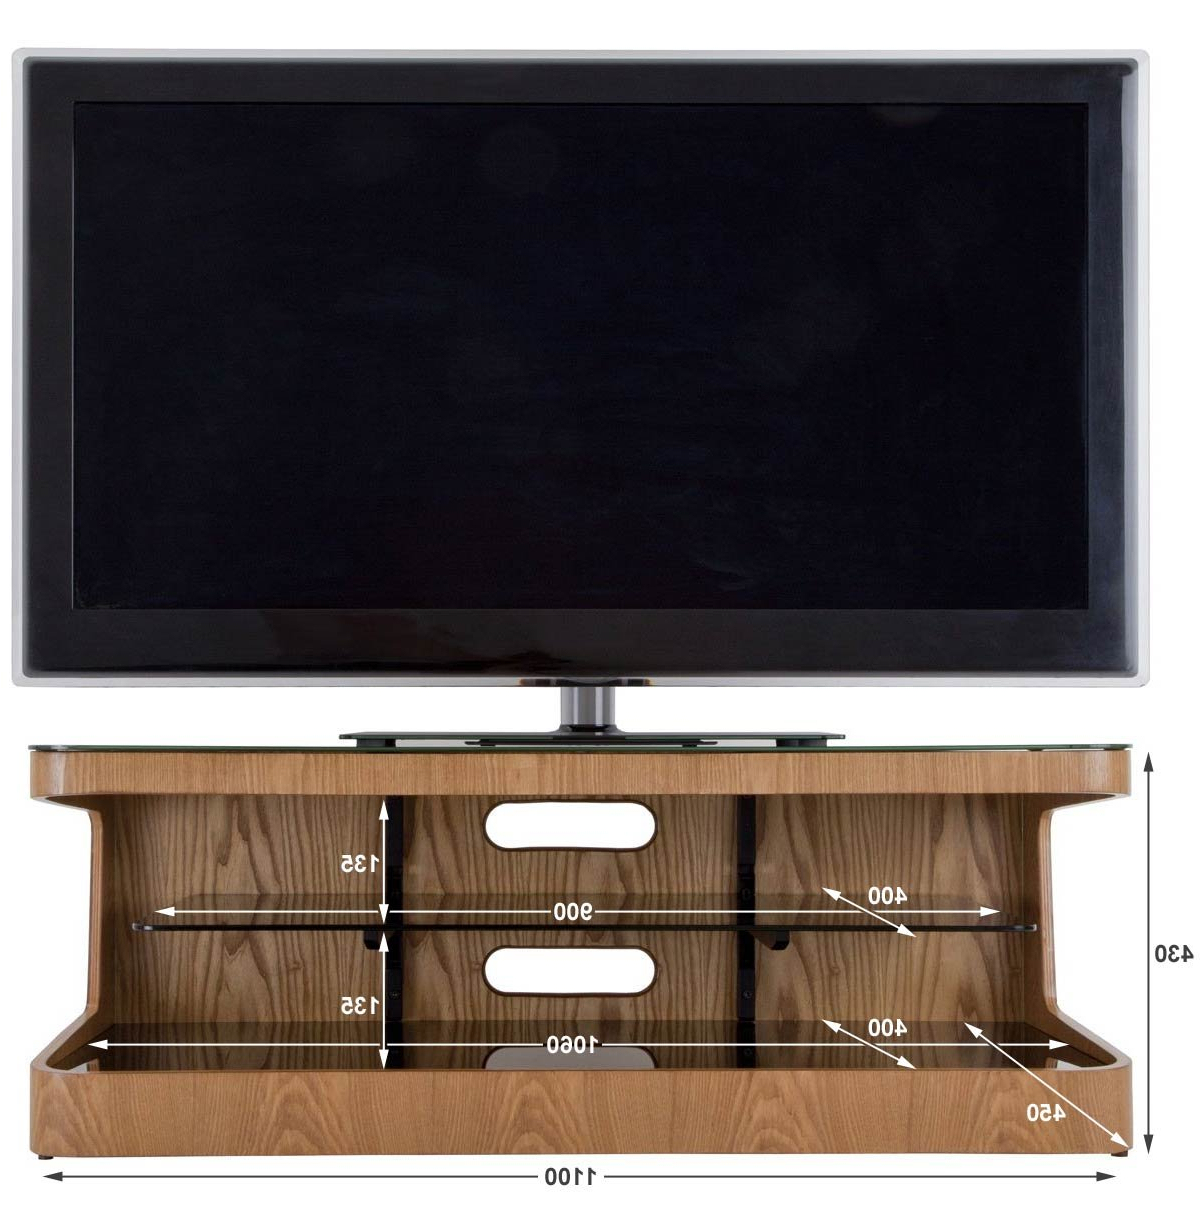 Avf Winchester Oak Tv Stand For Up To 55 Inch: Amazon.co (View 4 of 20)